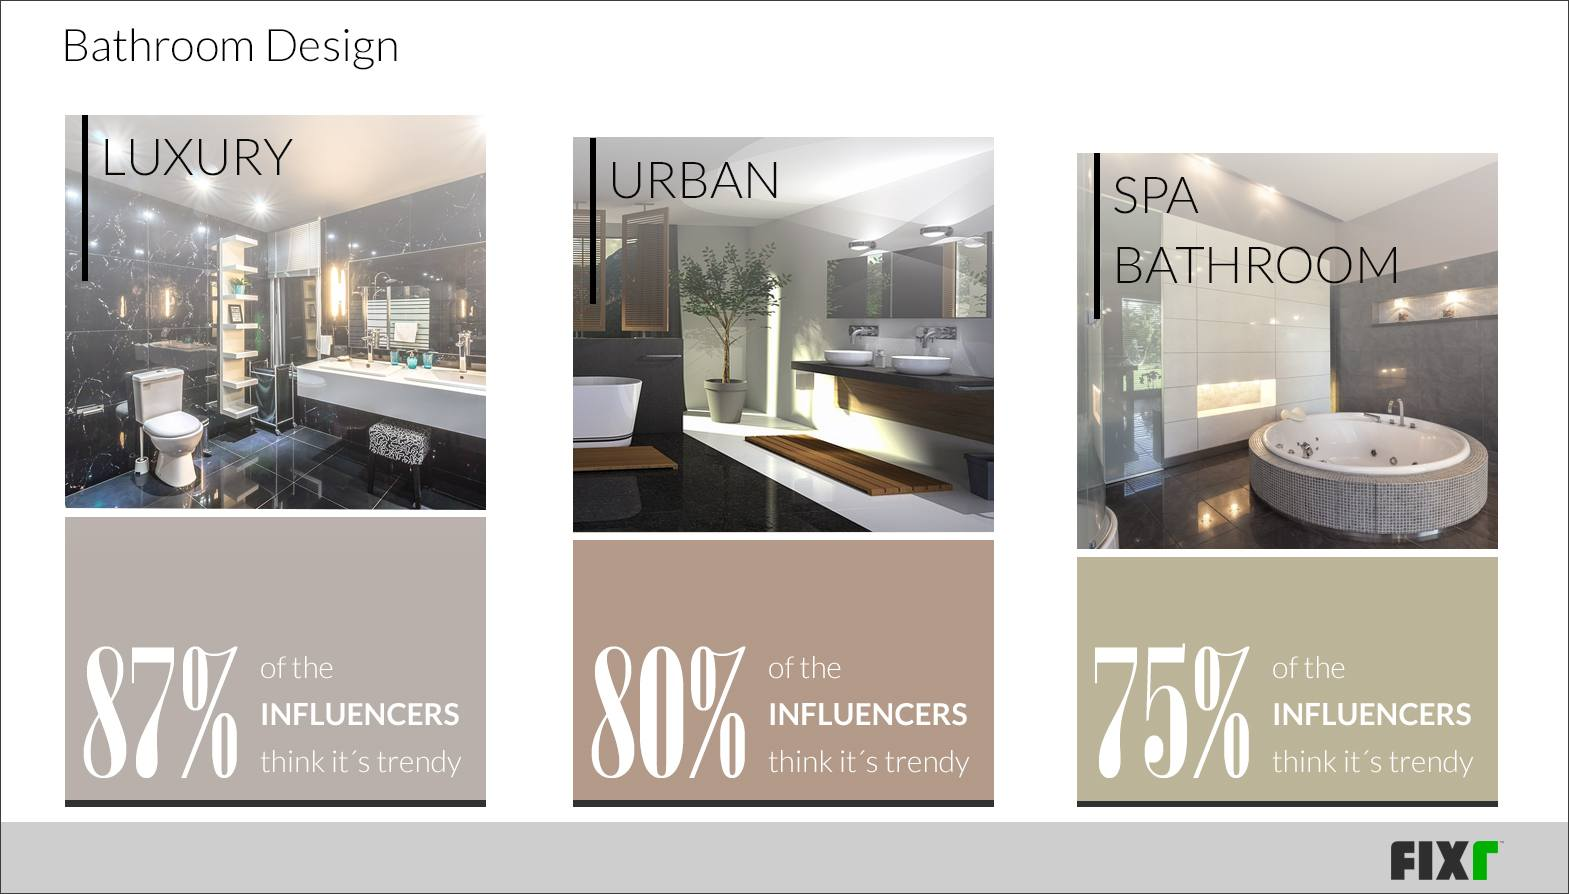 87% Of Influencers Say That They Find Luxury Bathrooms To Be The Most  Trendy Of The Possible Designs Today. This Is Closely Followed By Urban  Designs, ...